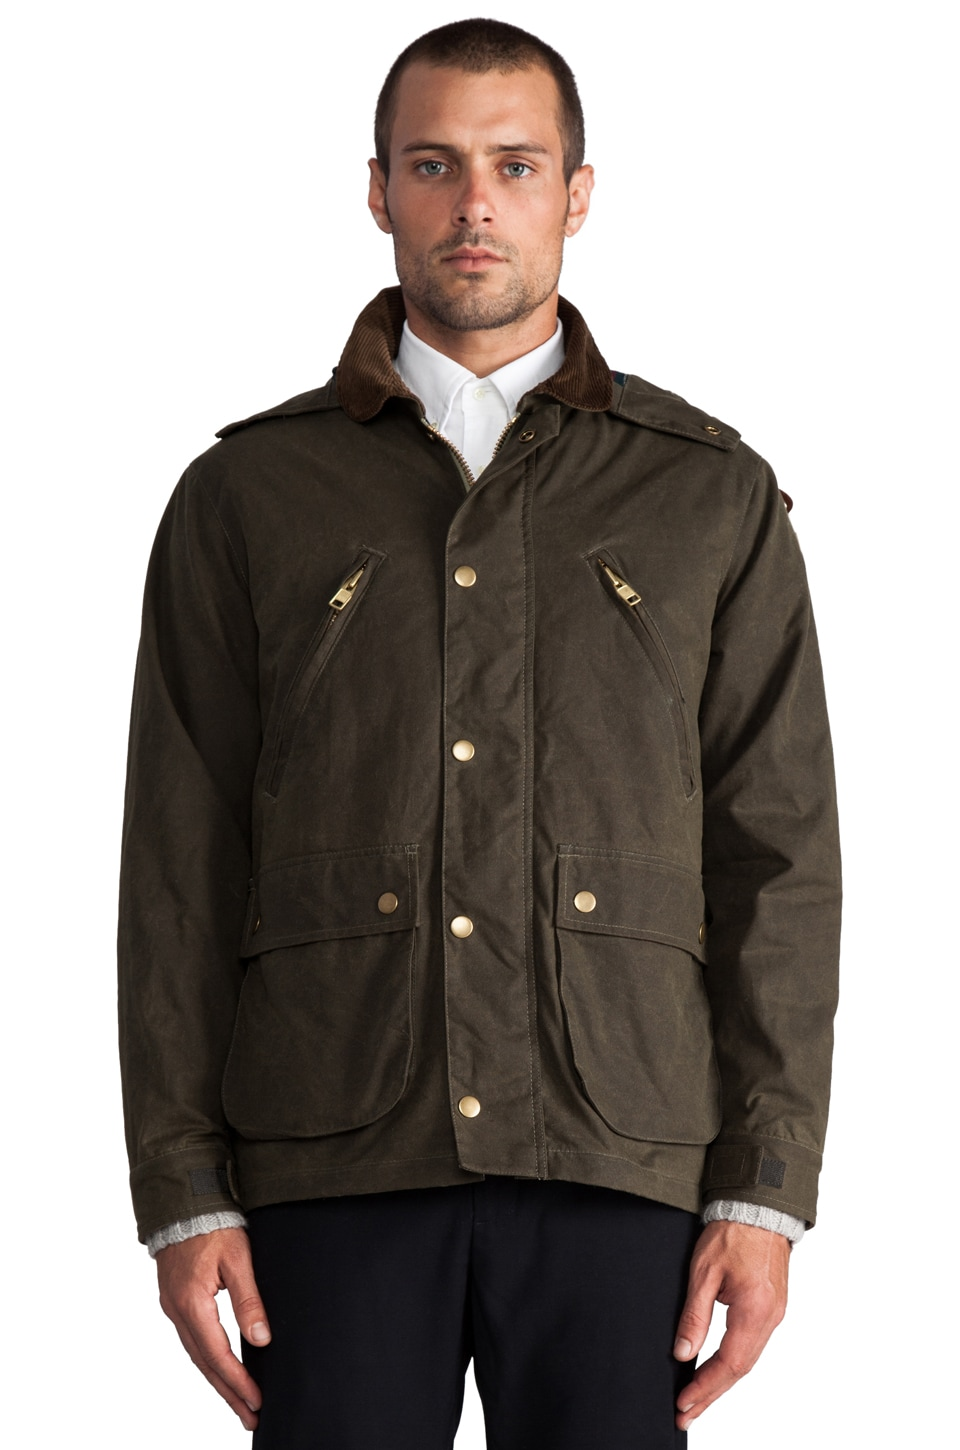 GANT Rugger Wax Your Back Jacket in Field Green